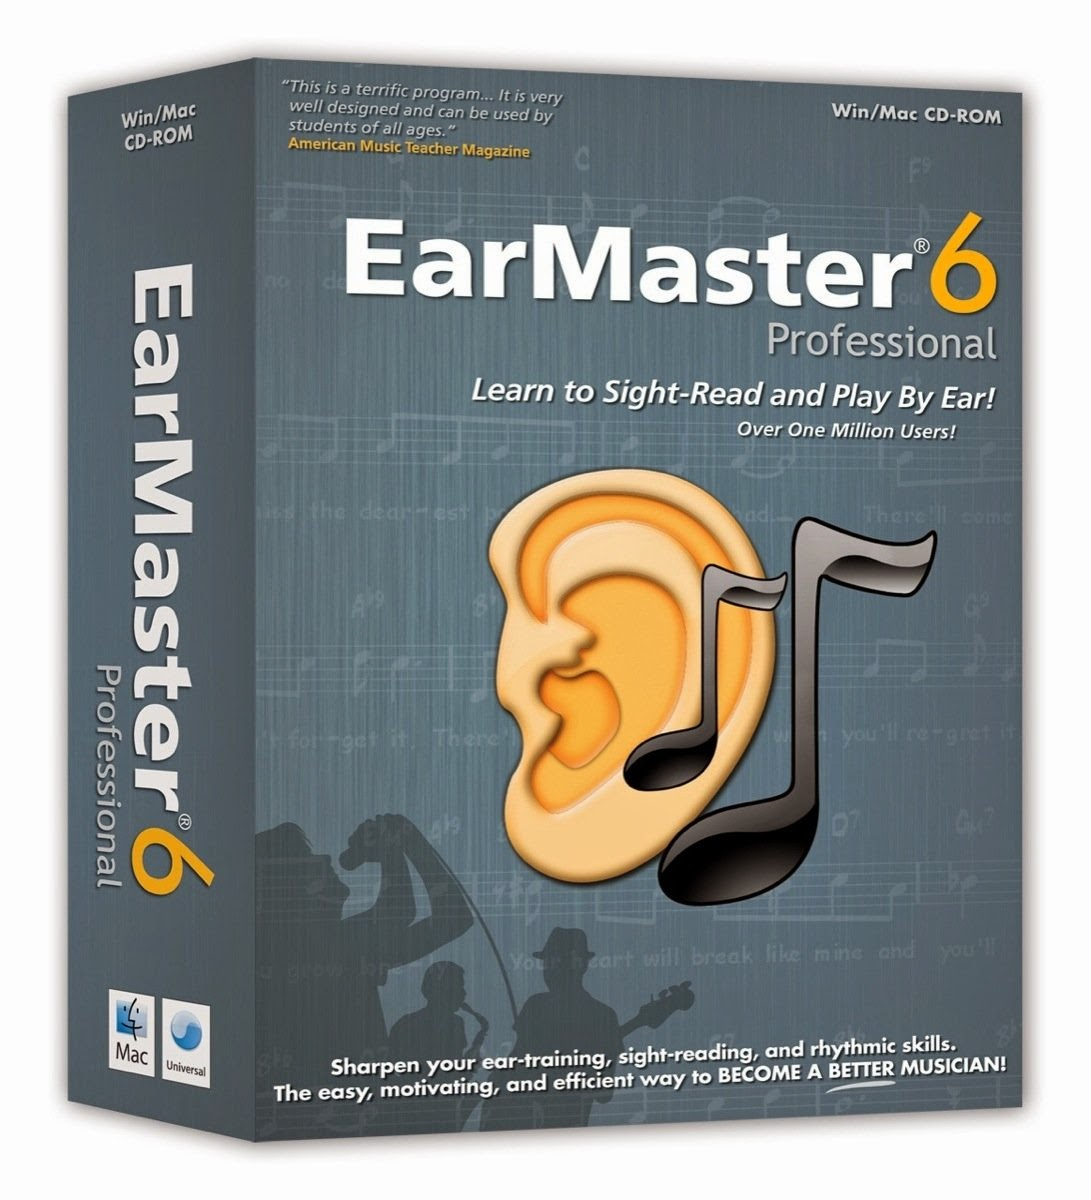 EM6 300dpi RGB 3371035af58fd29026005a6a2f445990 Download   Earmaster Pro V6.1 Build 625PW + Patch